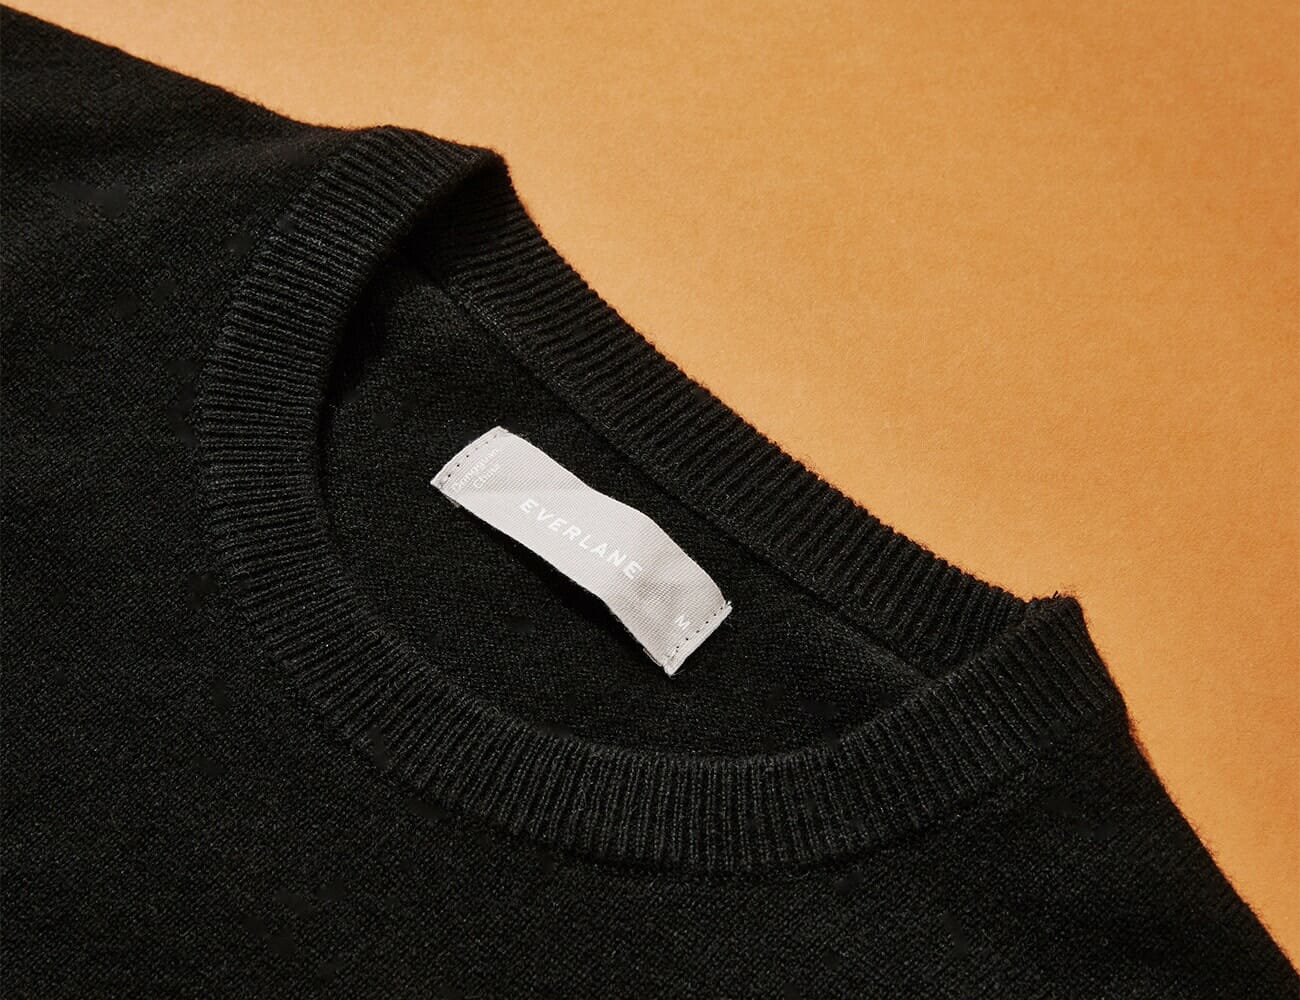 The-Best-Cashmere-Sweaters-for-100-or-Less-Gear-Patrol-Everlane-Slide-2